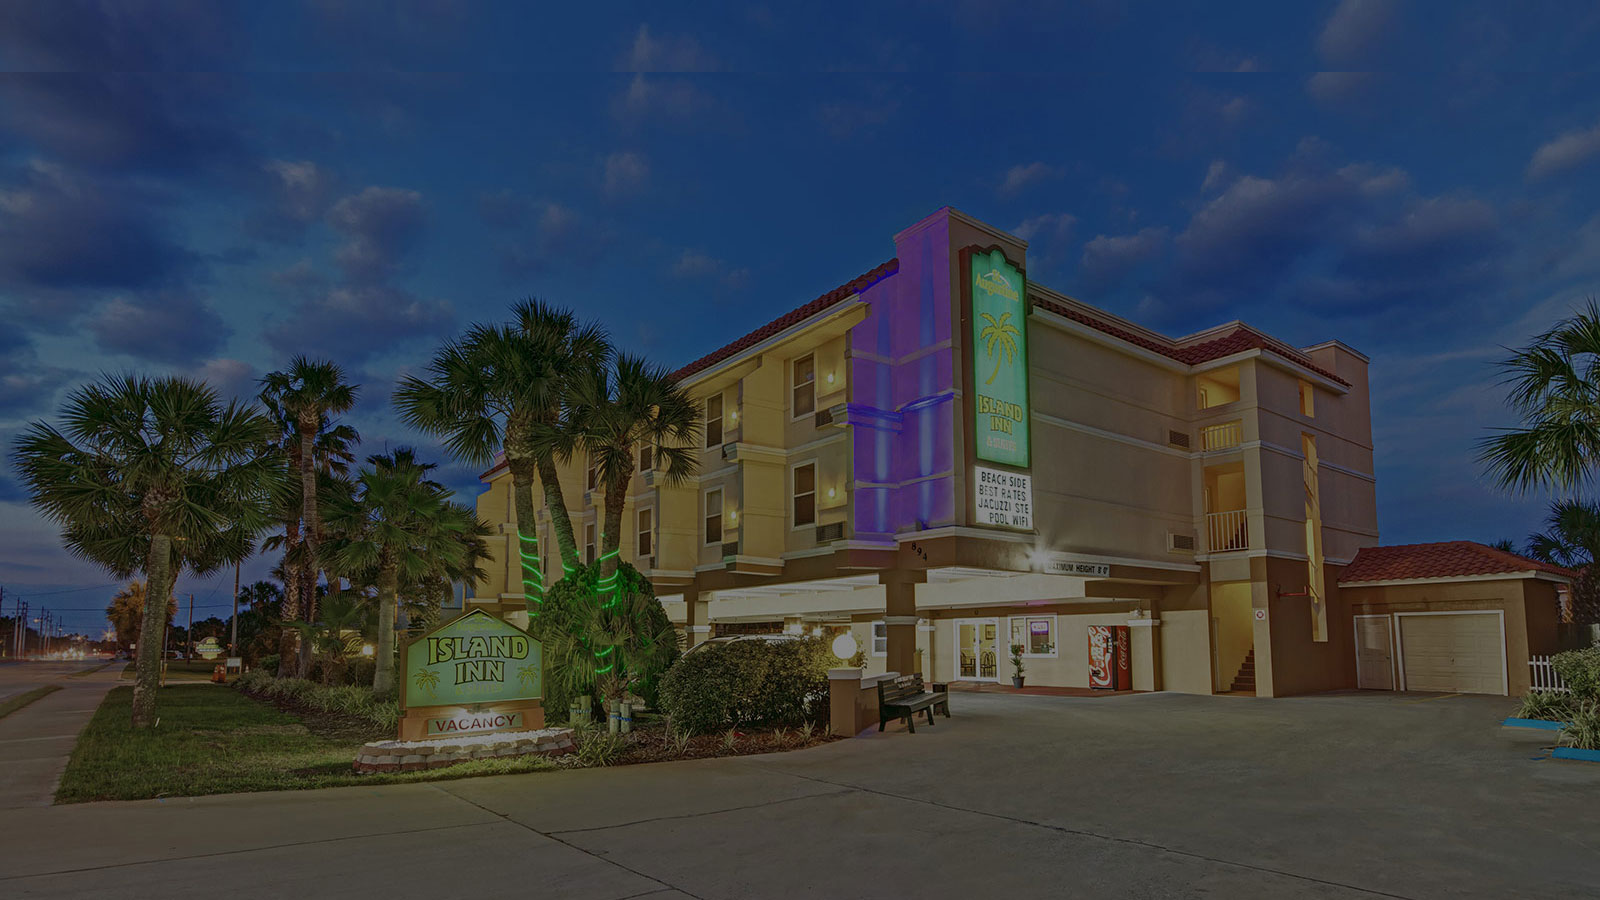 Welcome to our cozy beachside hotel - located in beautiful St. Augustine beach